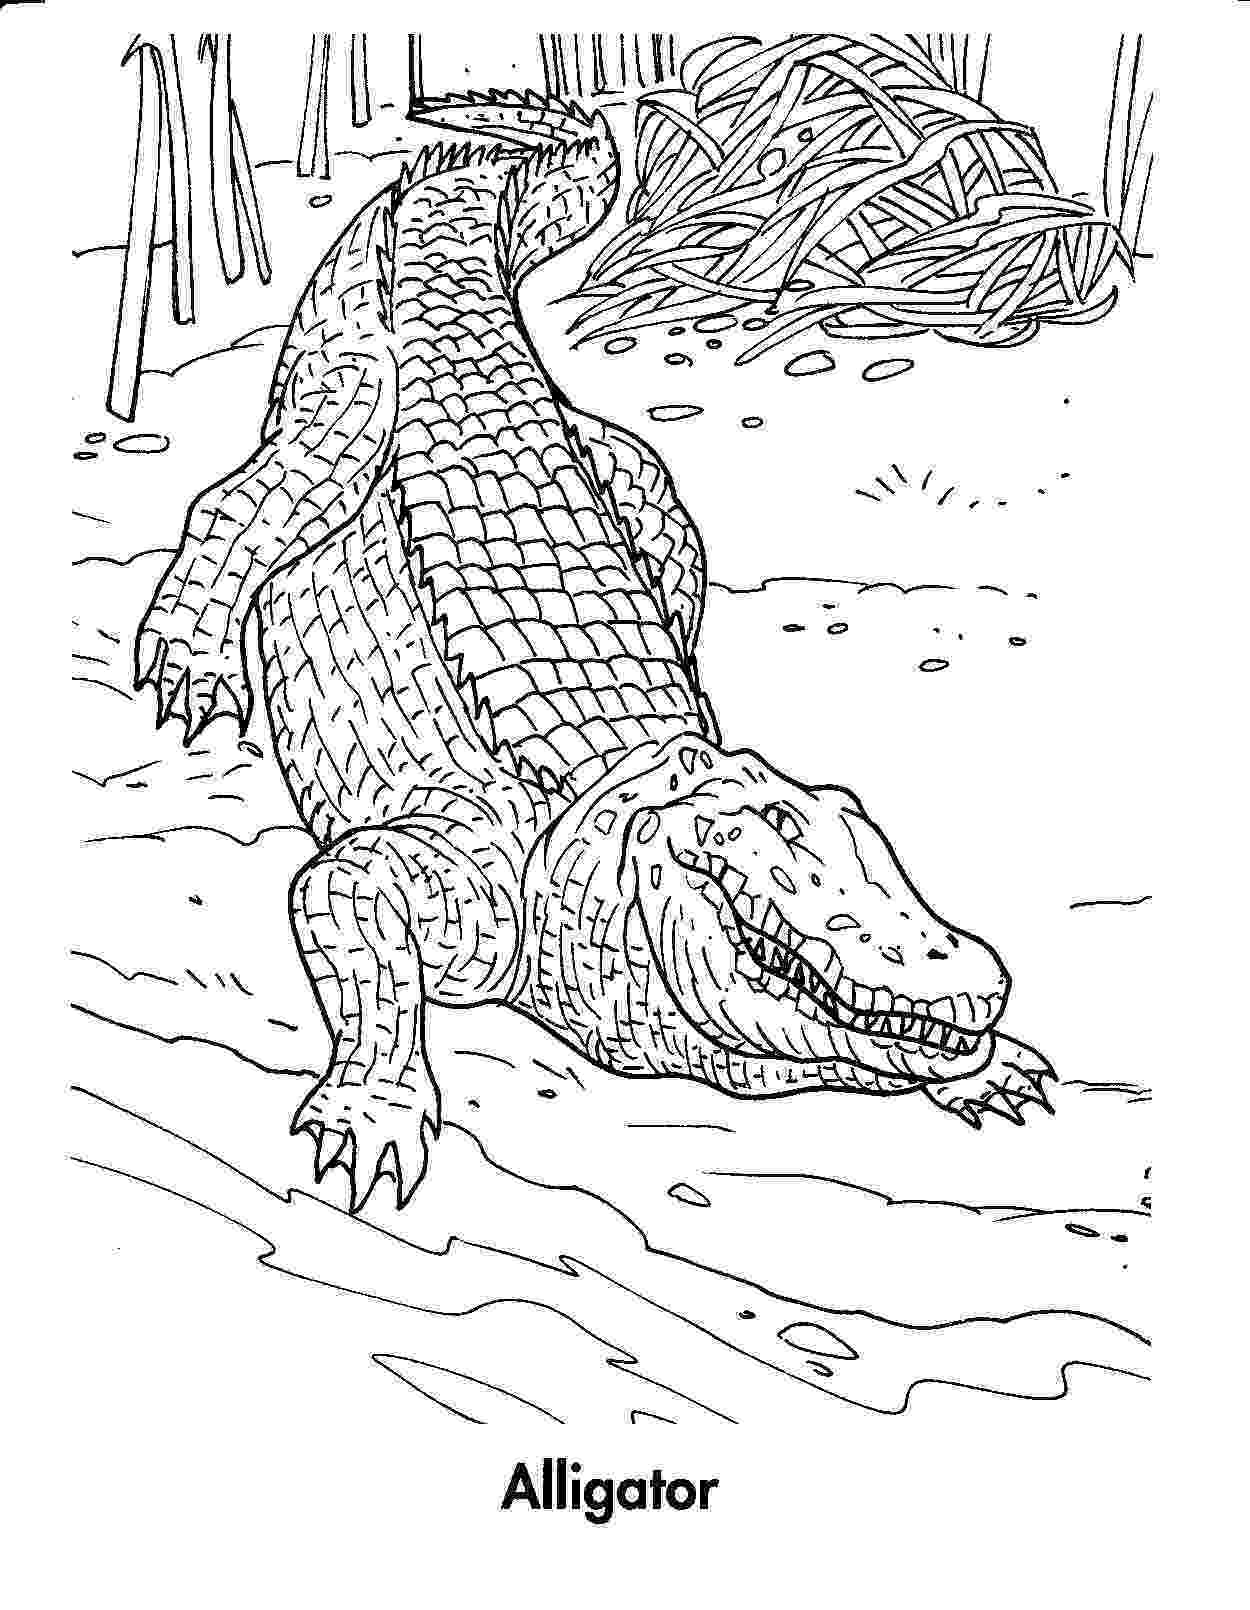 crocodile colouring pictures free printable crocodile coloring pages for kids crocodile colouring pictures 1 1